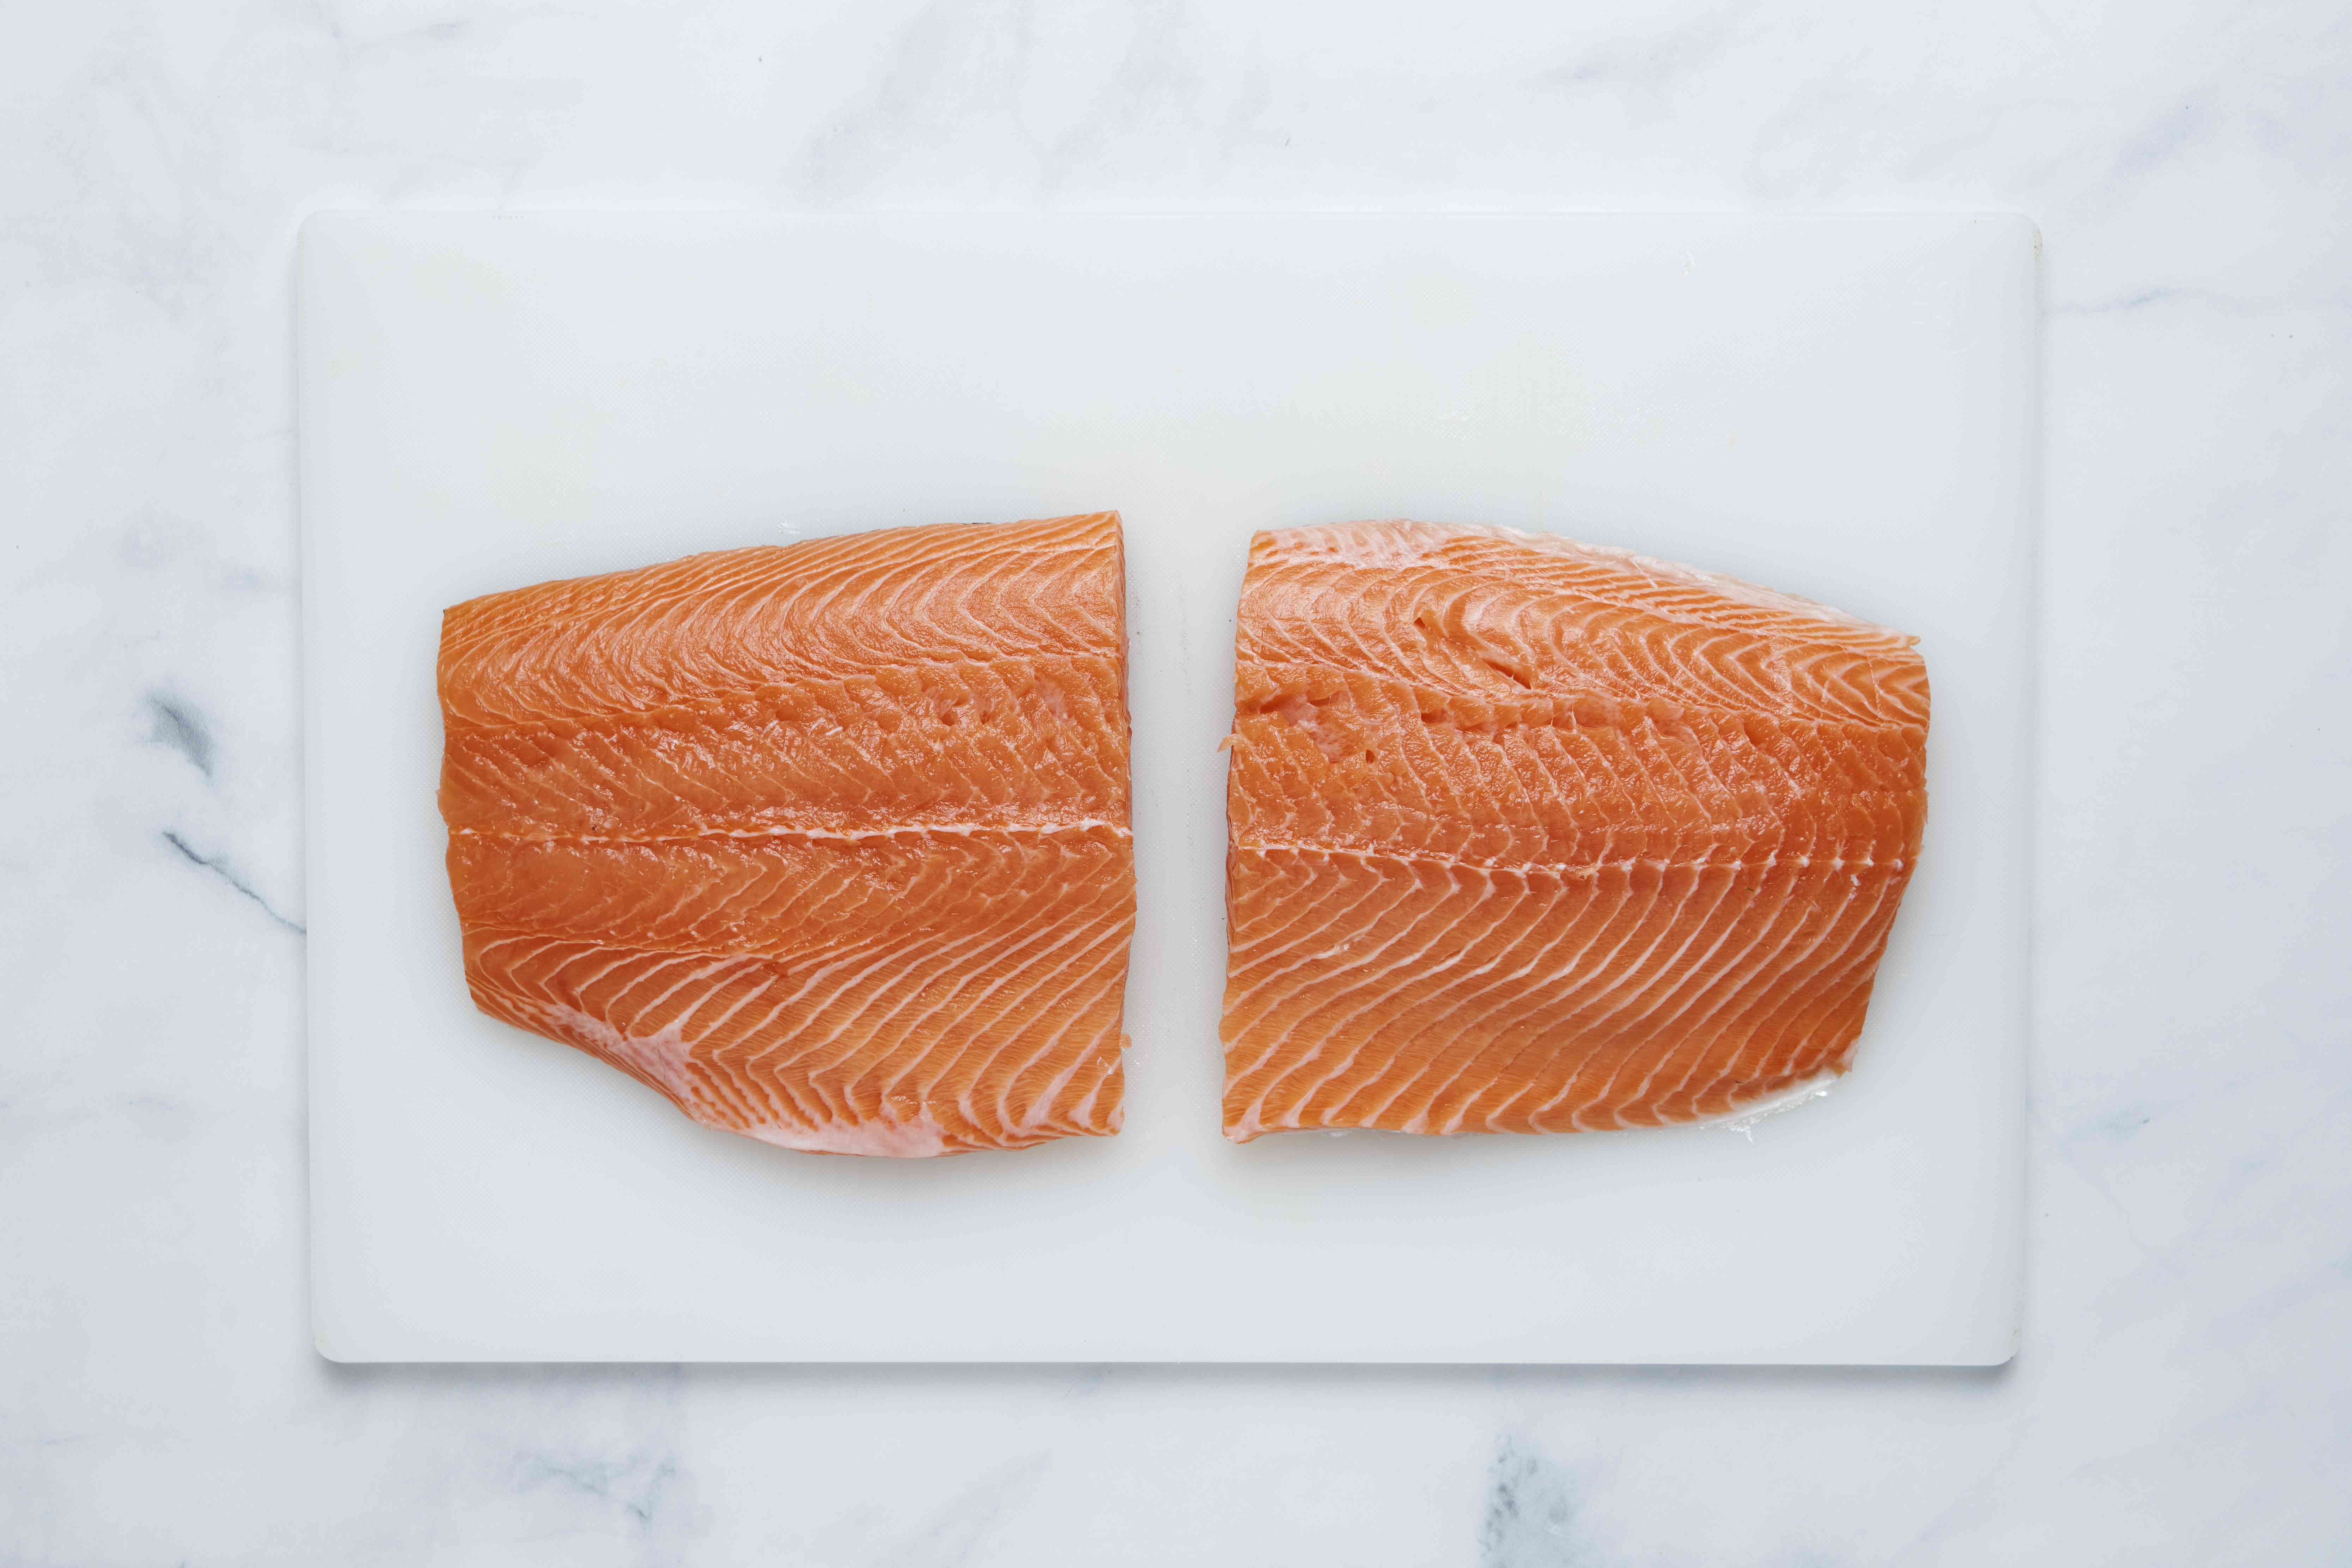 Cut the salmon in half across the fillet into two halves